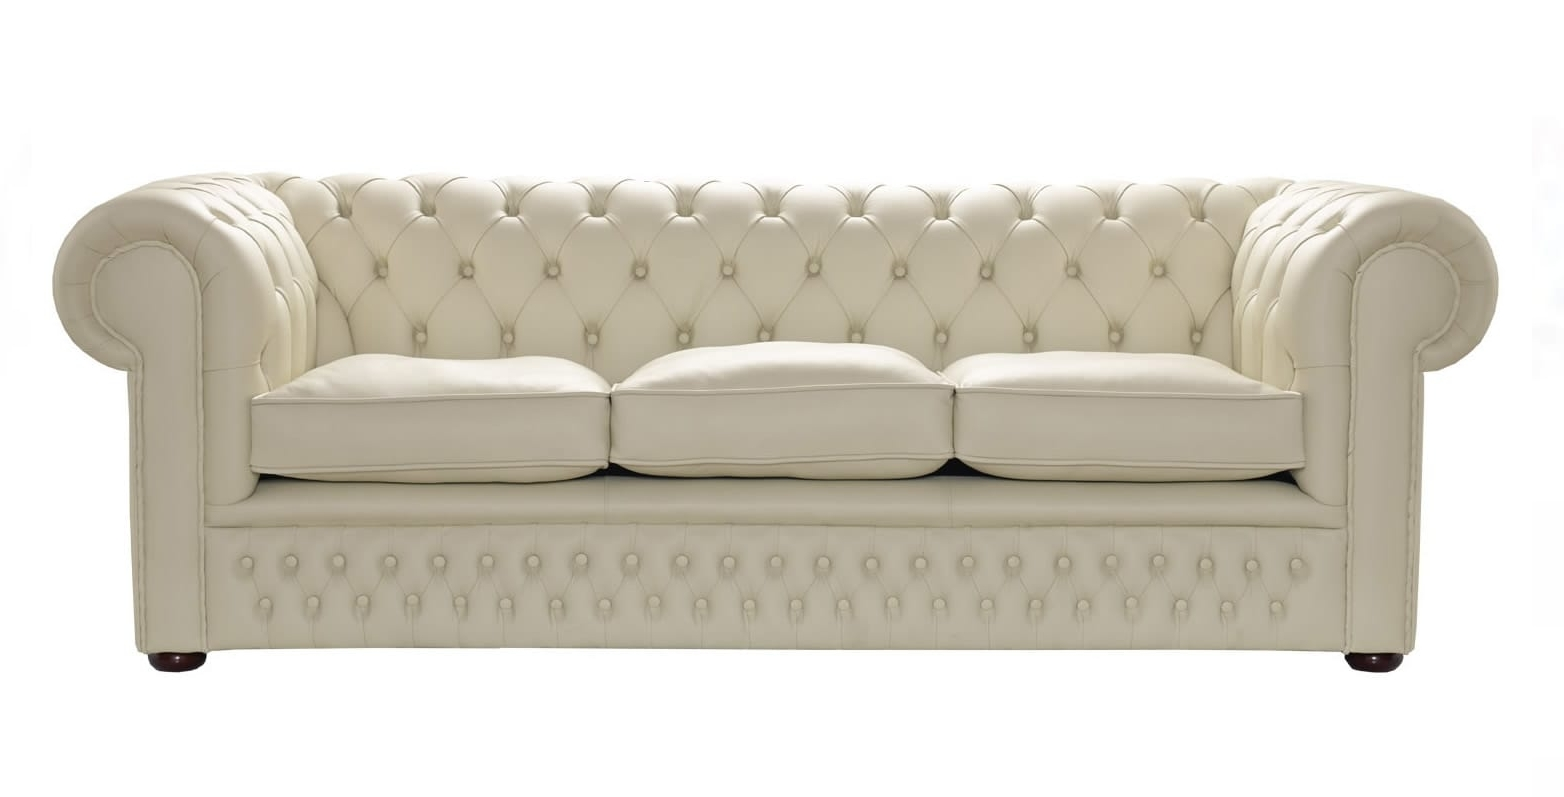 Sofa : Genuine Leather Sectional Cream Leather Sofa And Loveseat Intended For Trendy Cream Colored Sofas (View 9 of 20)